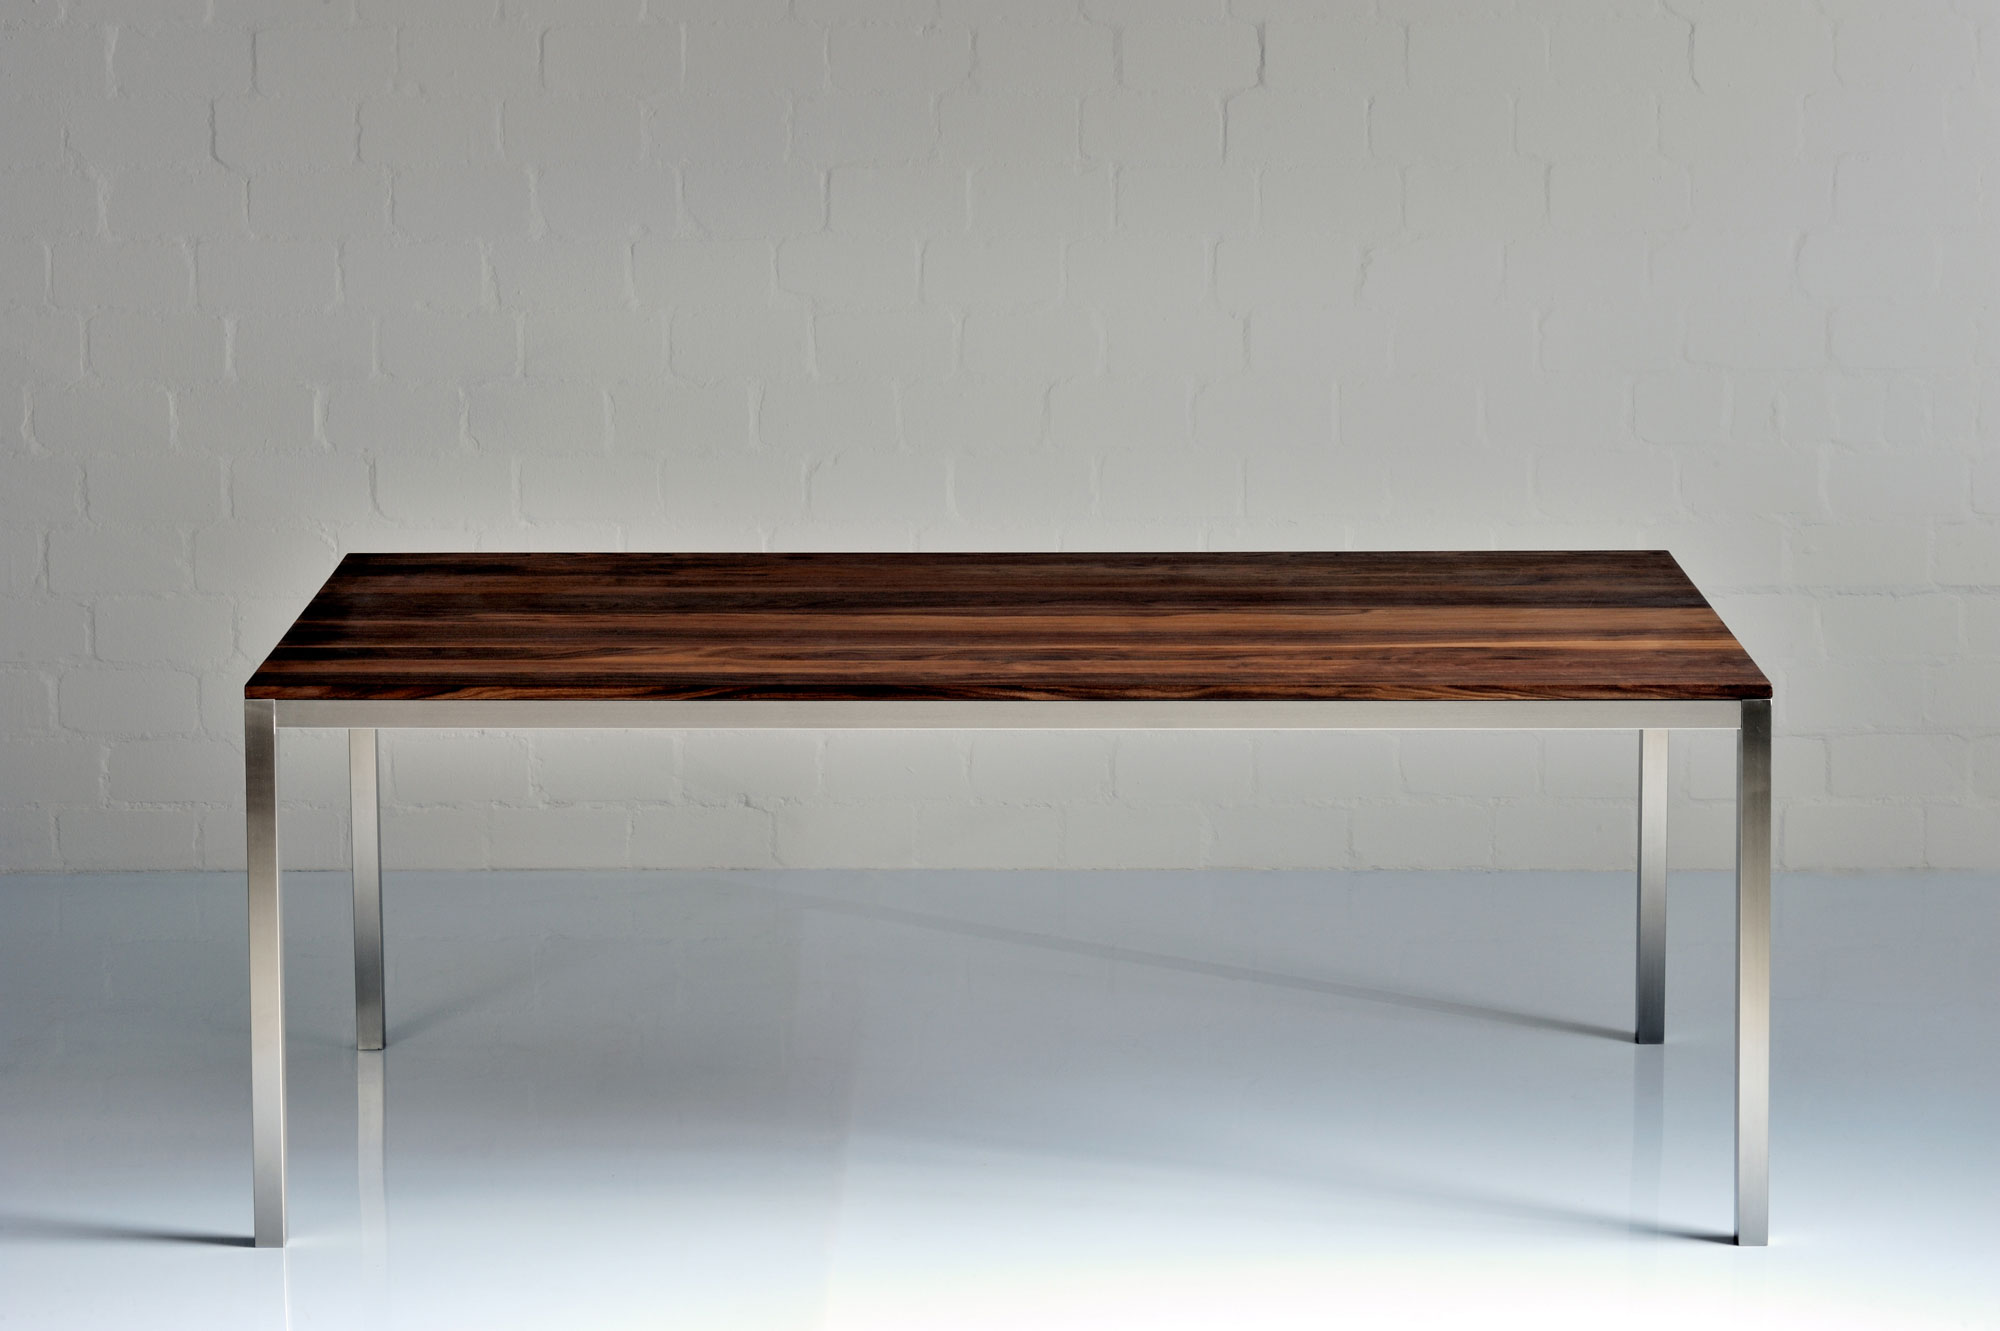 Aluminium Wood Table NOJUS 0977a custom made in solid wood by vitamin design